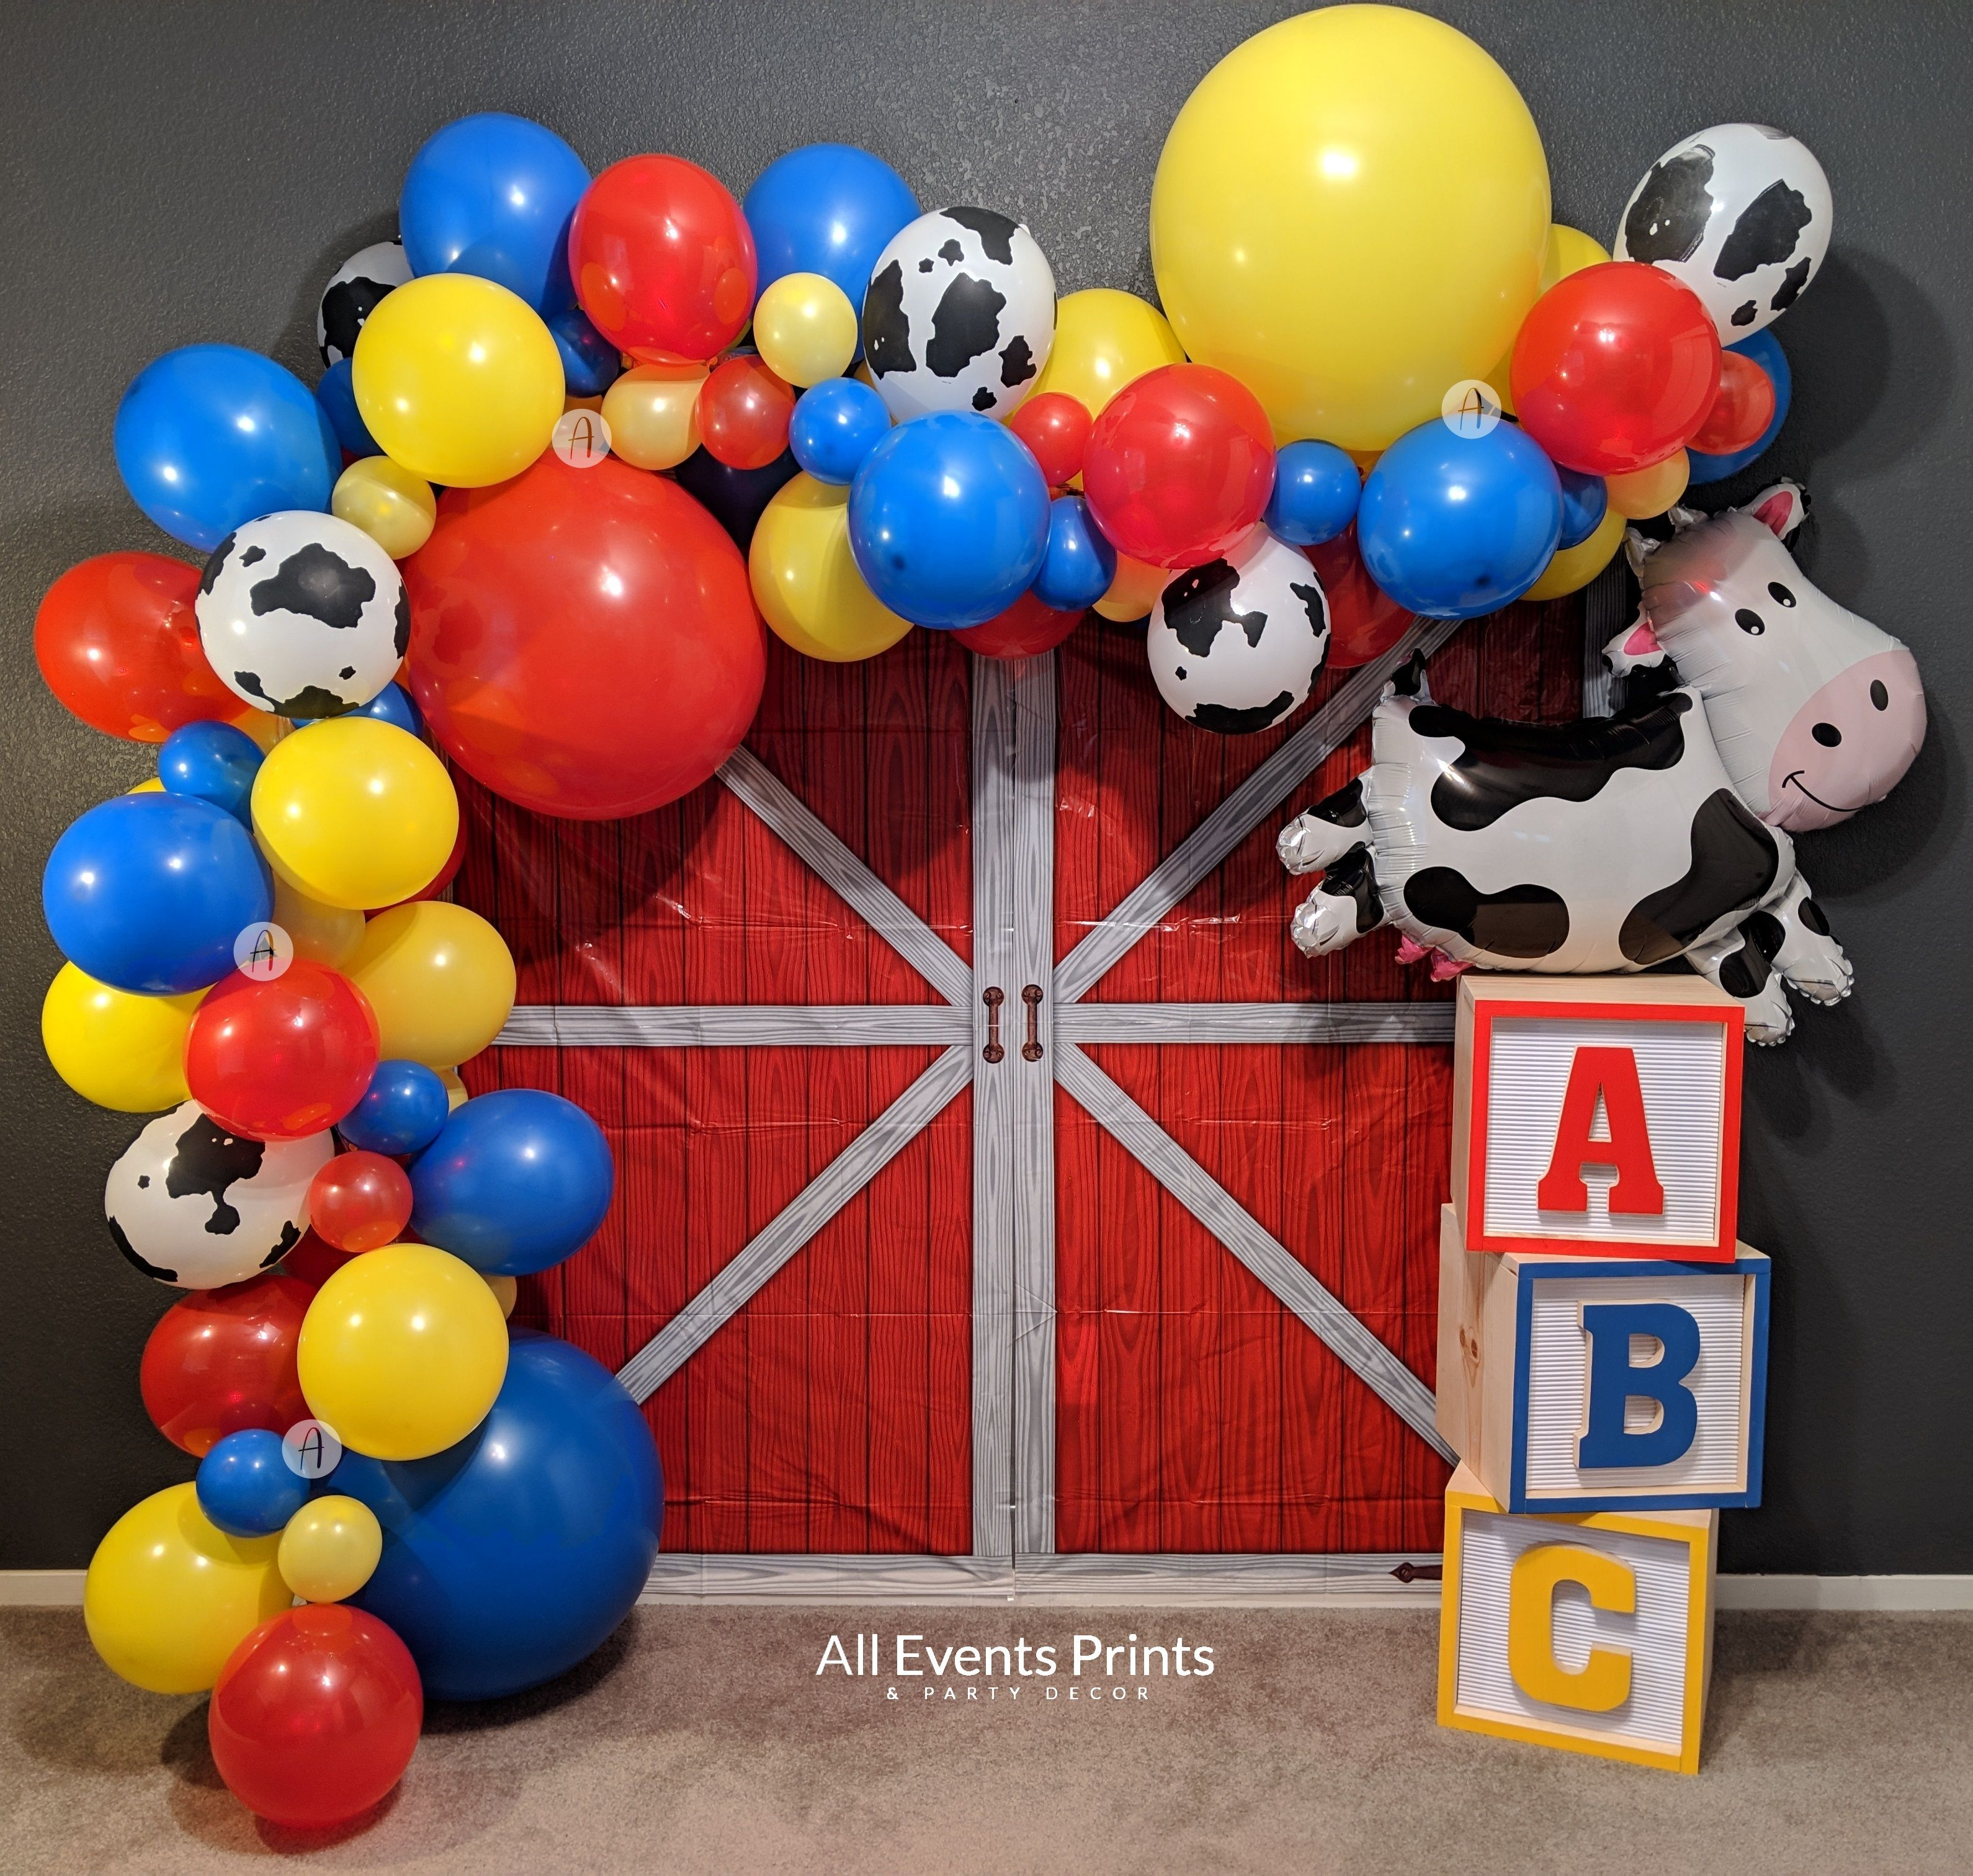 Toy Story Inspired Balloon Garland DIY 10 15 Ft , Baby